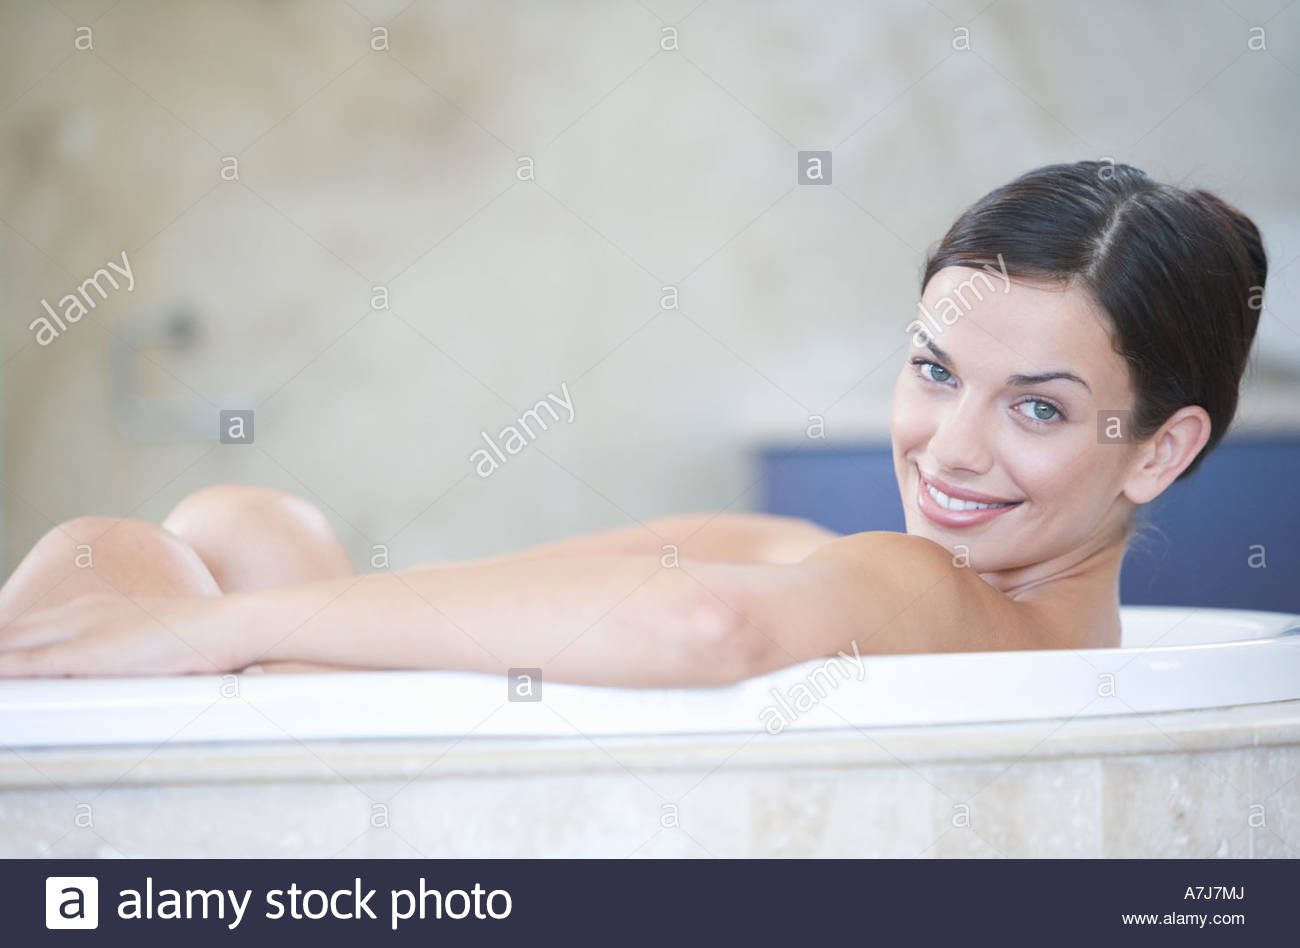 A young woman laying in a bath - Stock Image